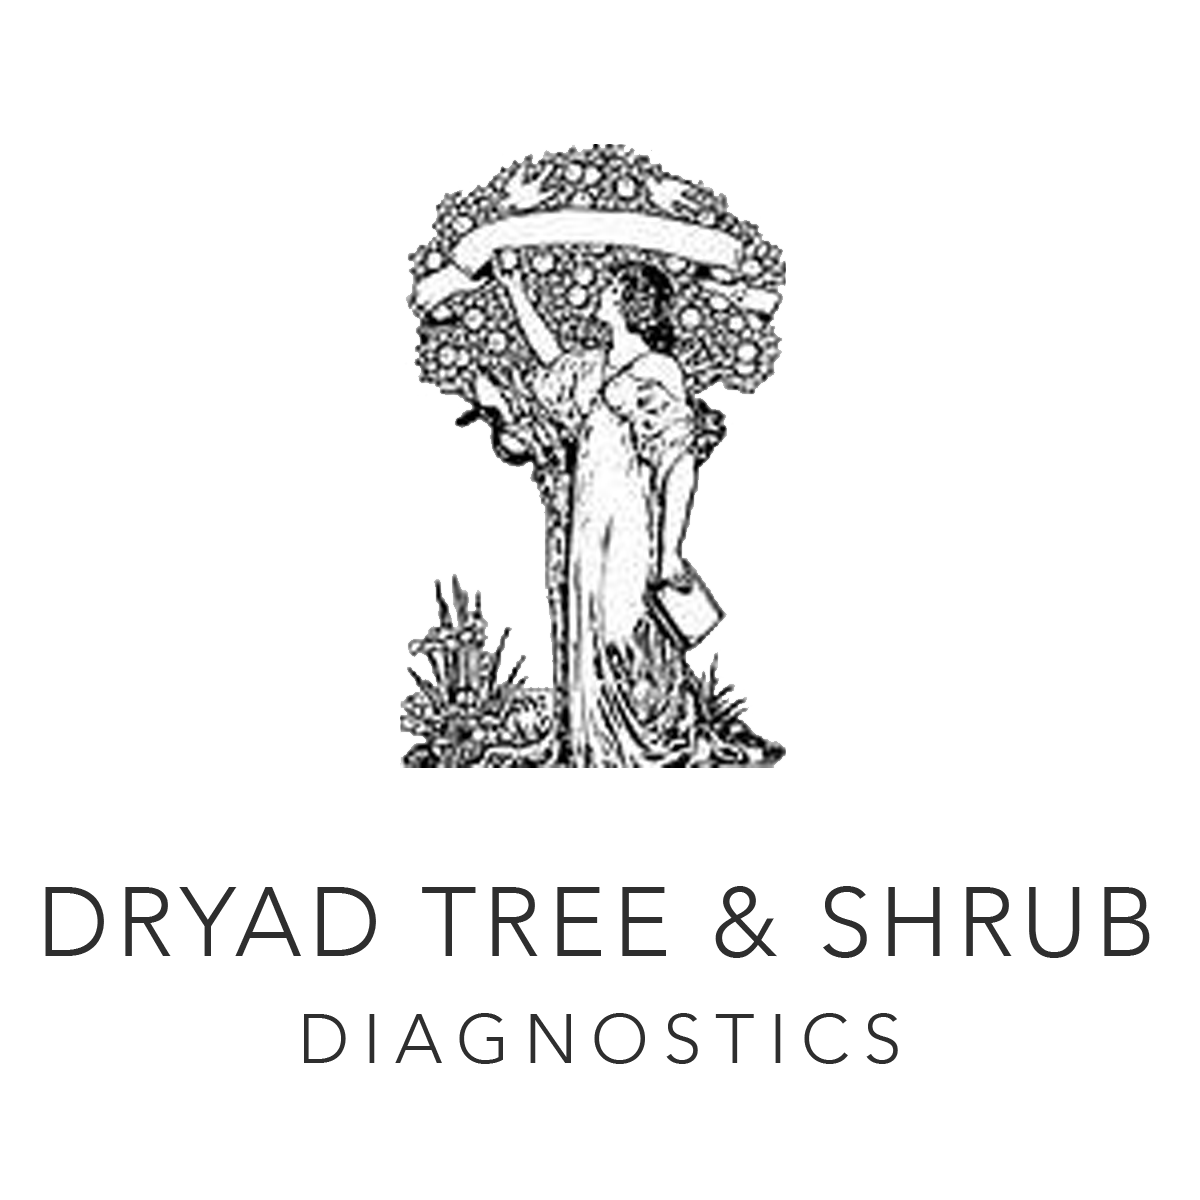 DRYAD Tree & Shrub Diagnostics